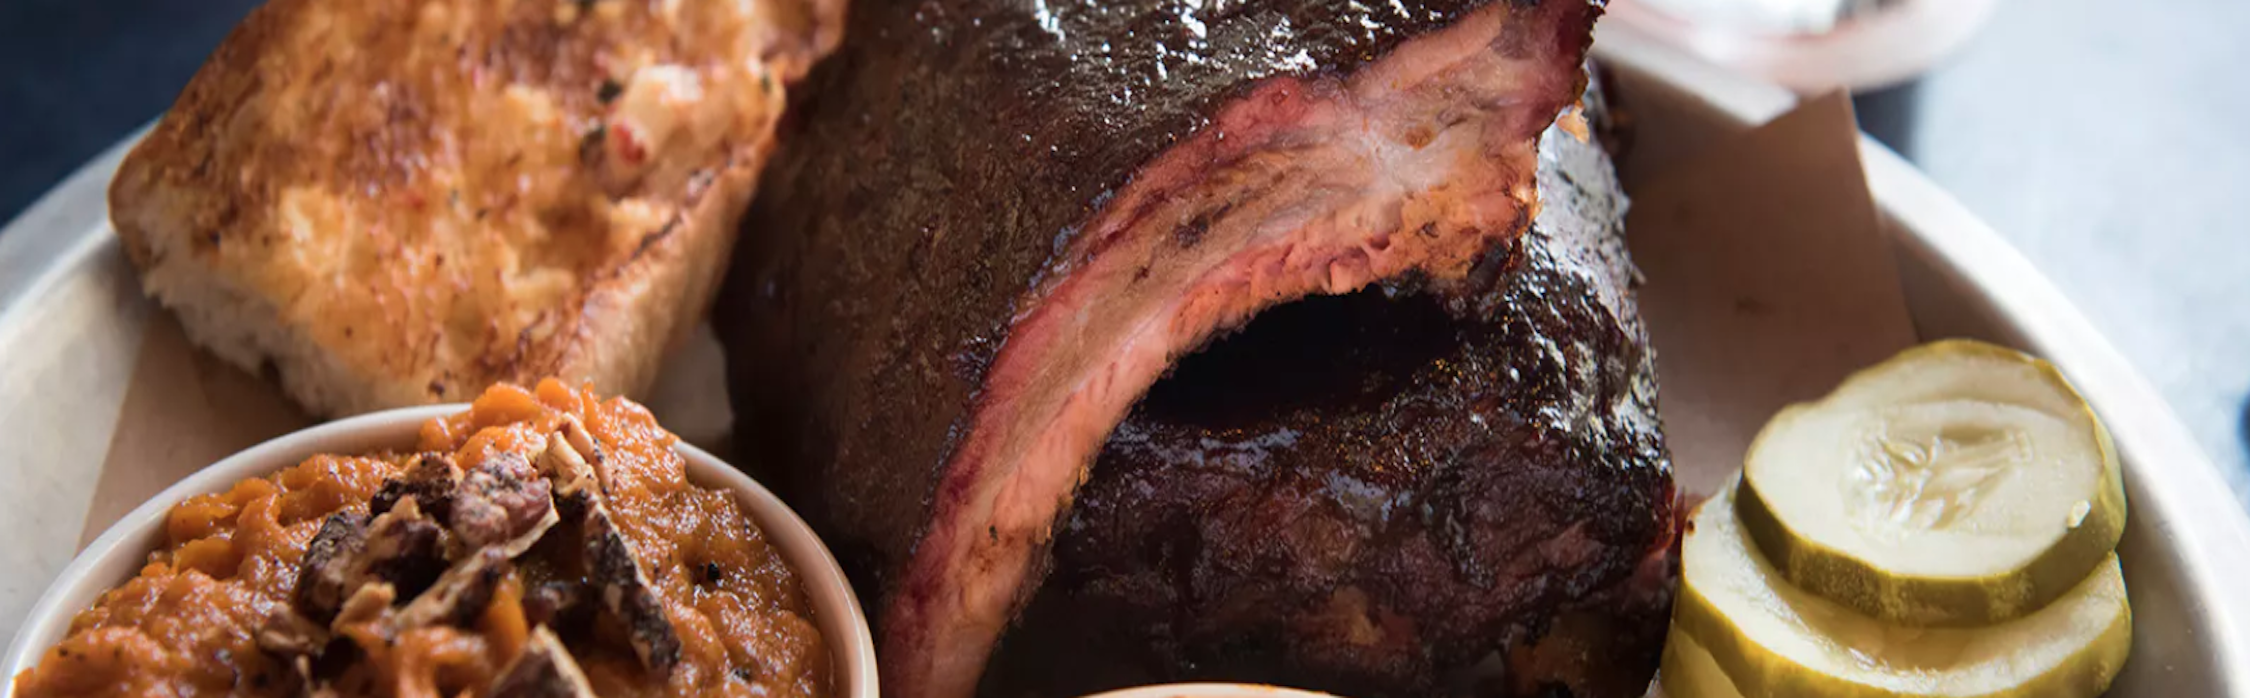 Southern Style Barbecue at Blue Smoke